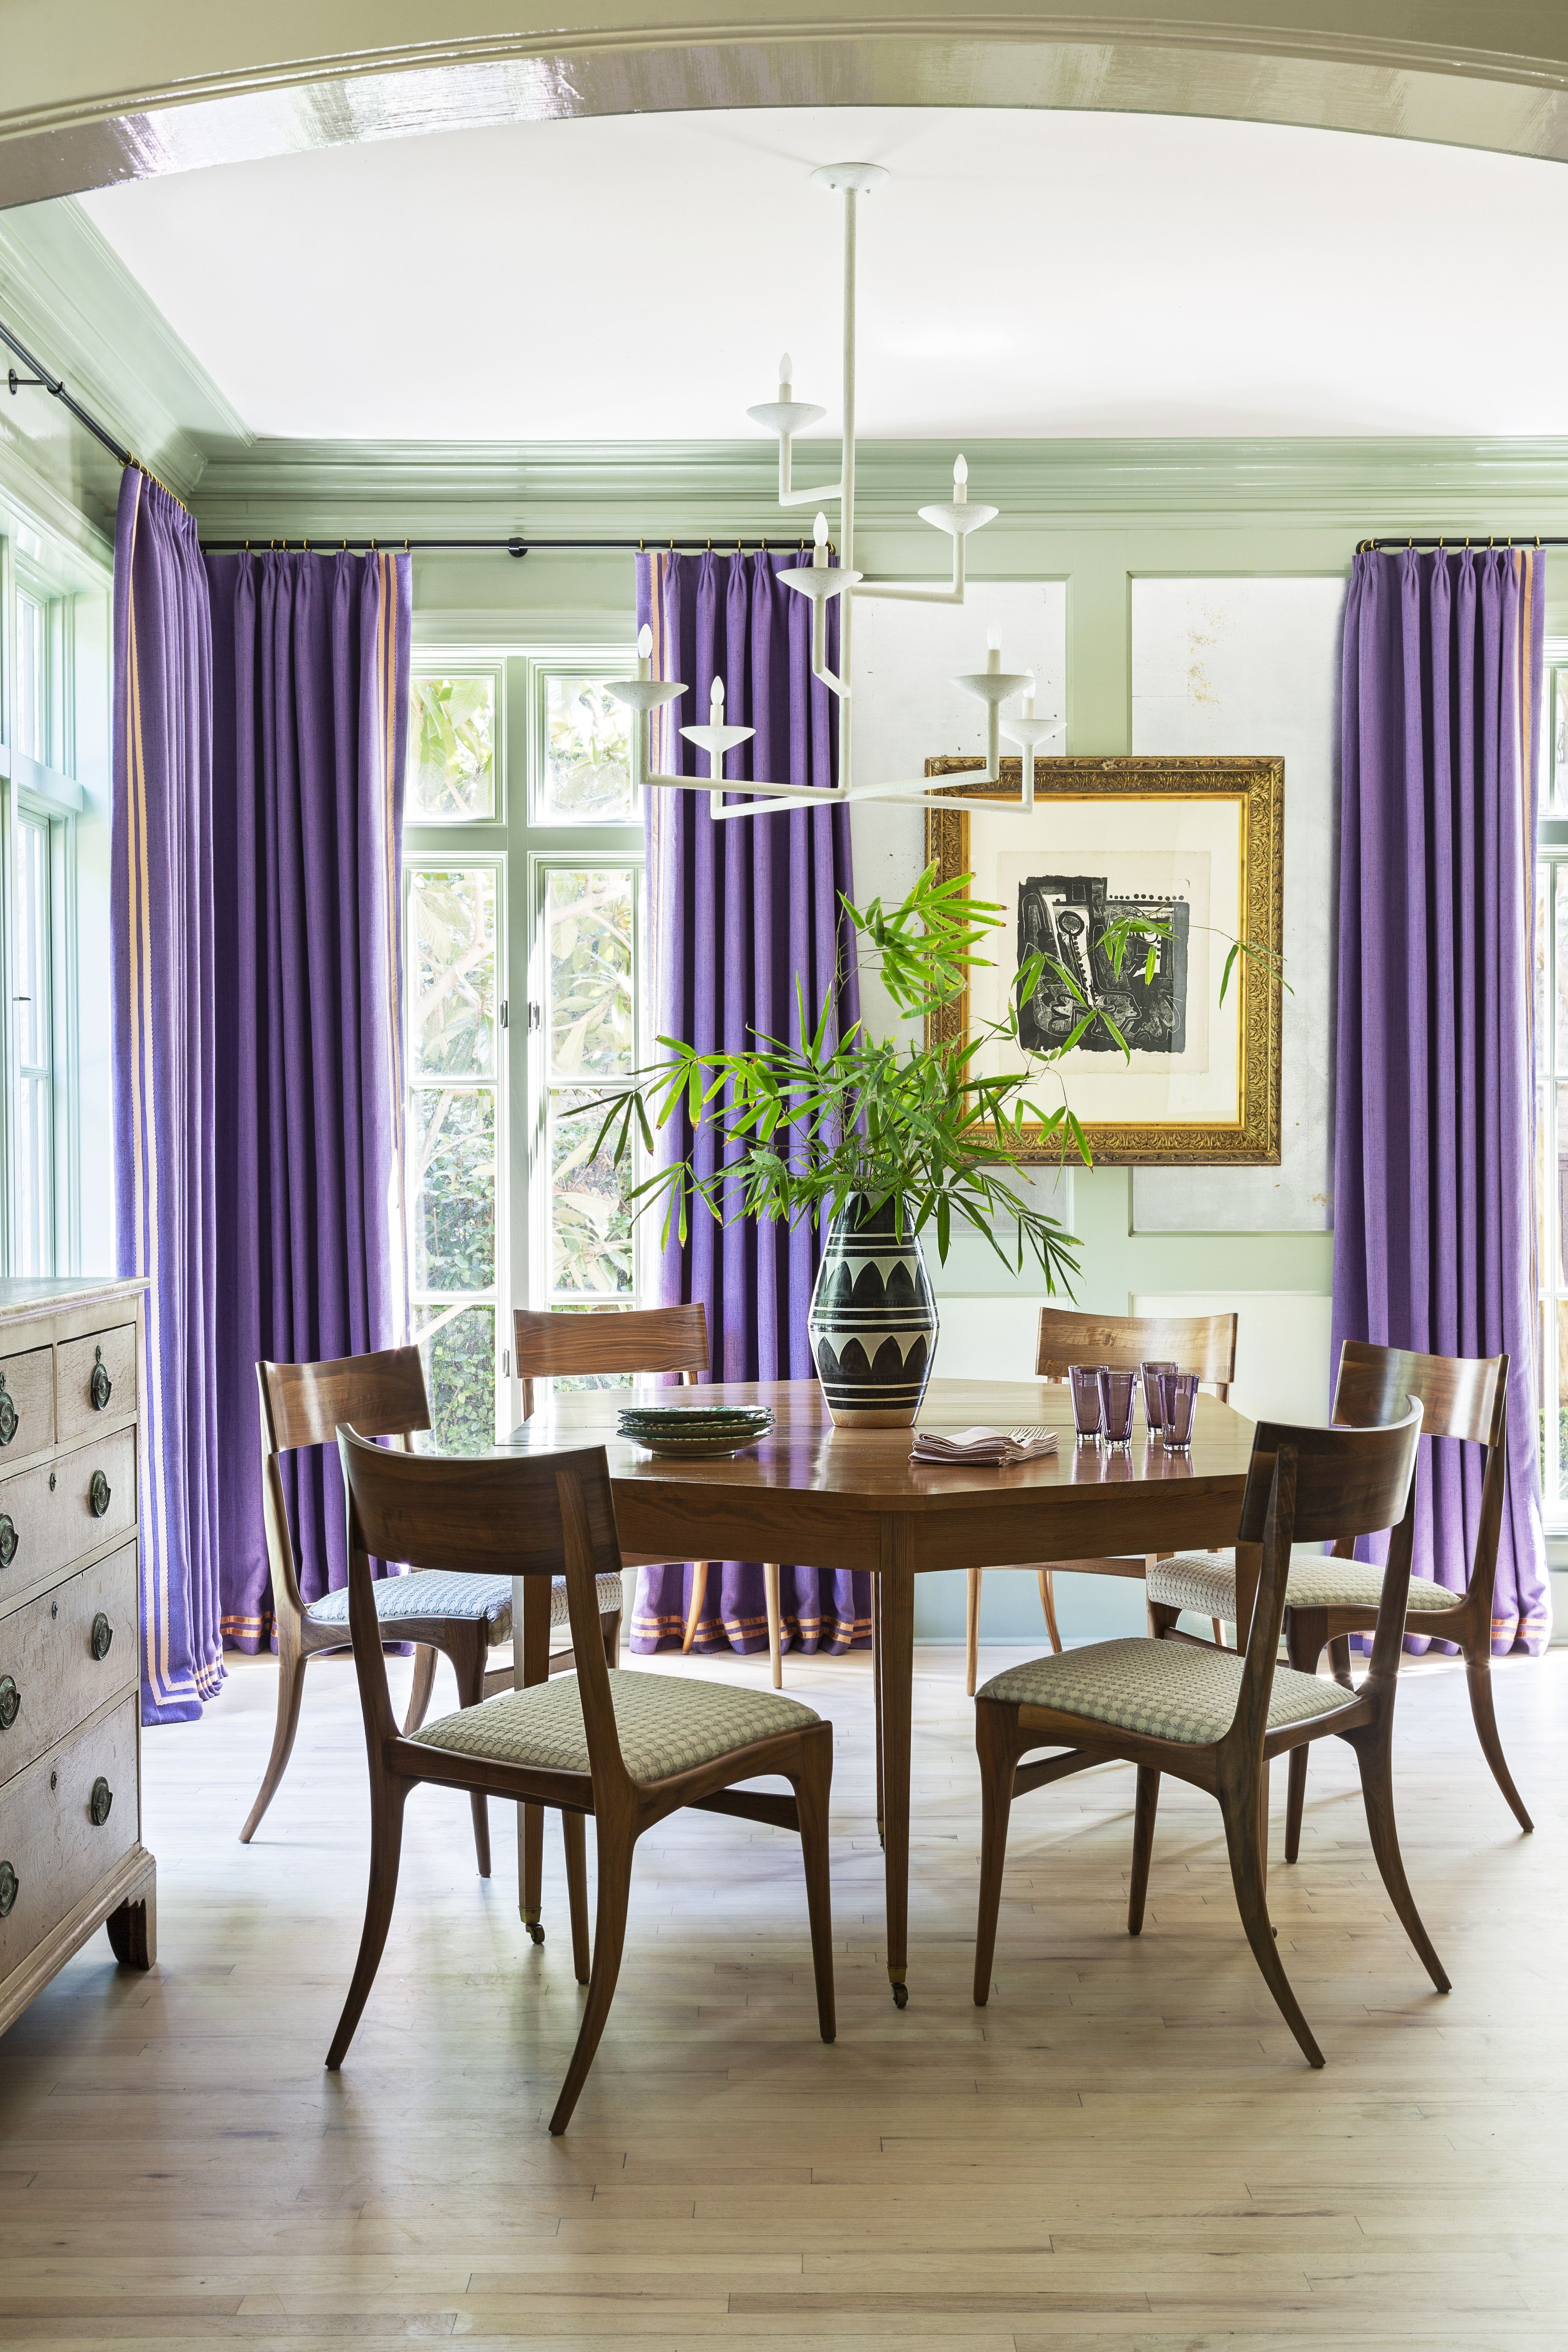 50 Unexpected Room Colors 2021 Best Room Color Combinations